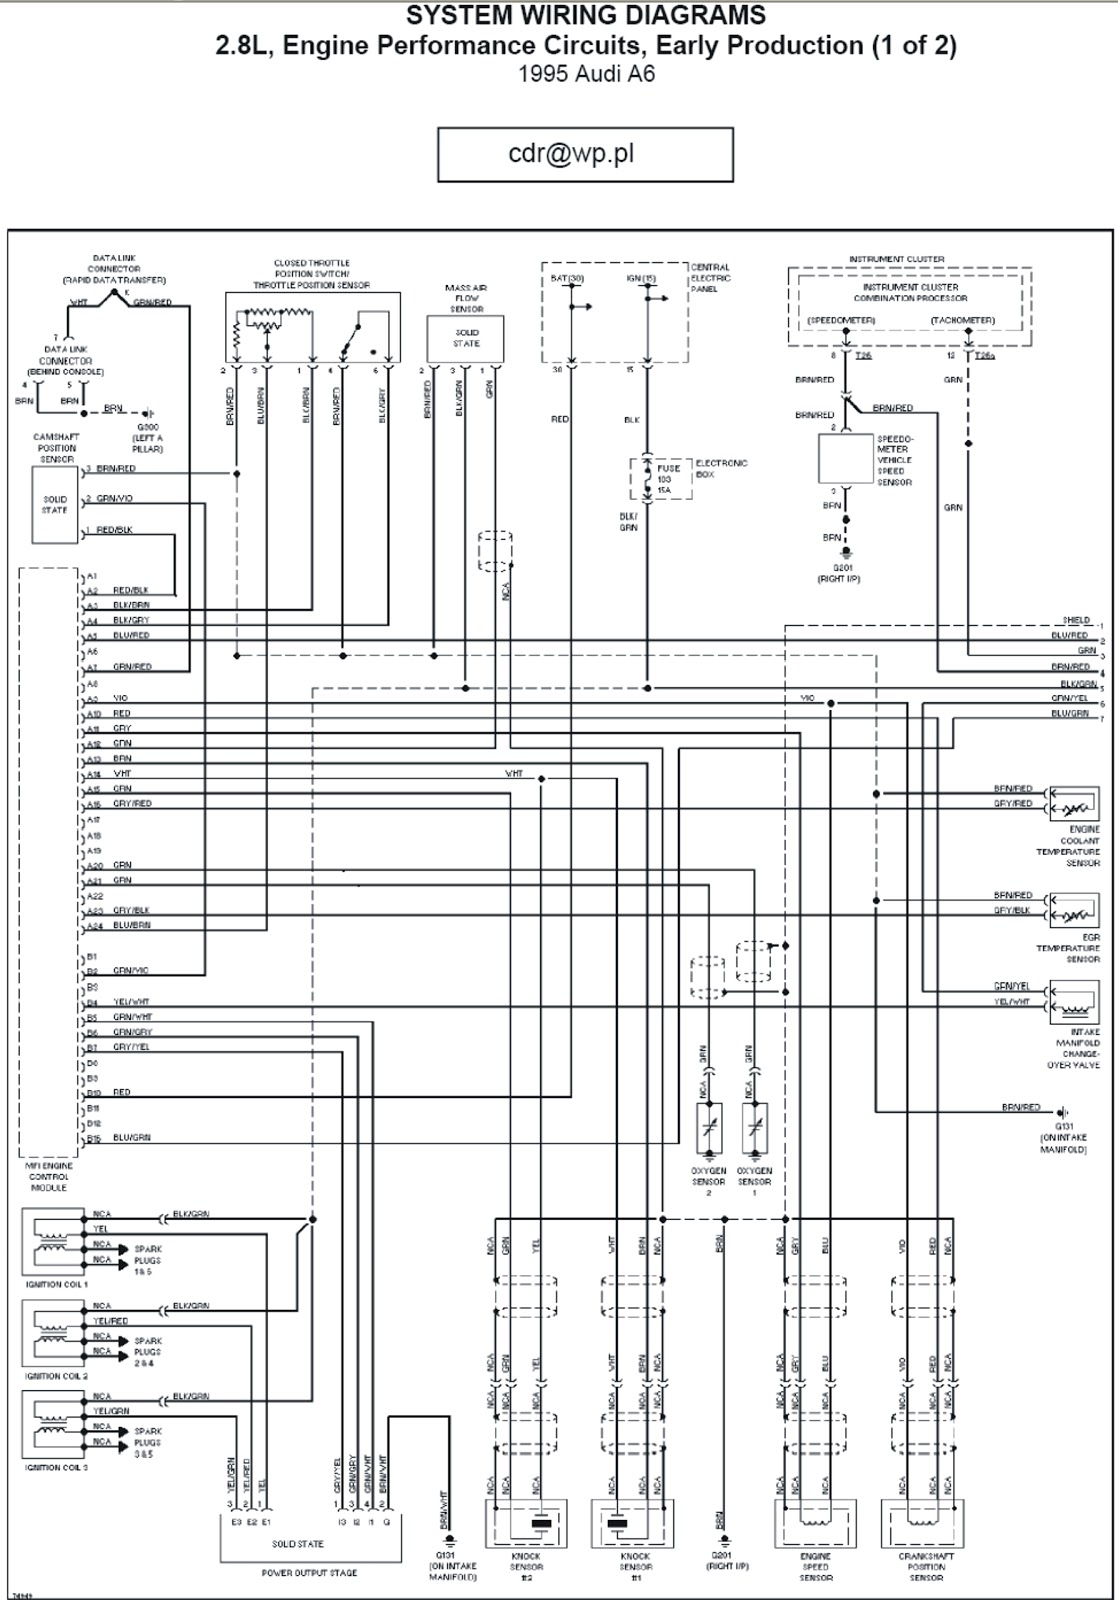 Audi A6 Engine Performance Circuits Wiring Diagrams